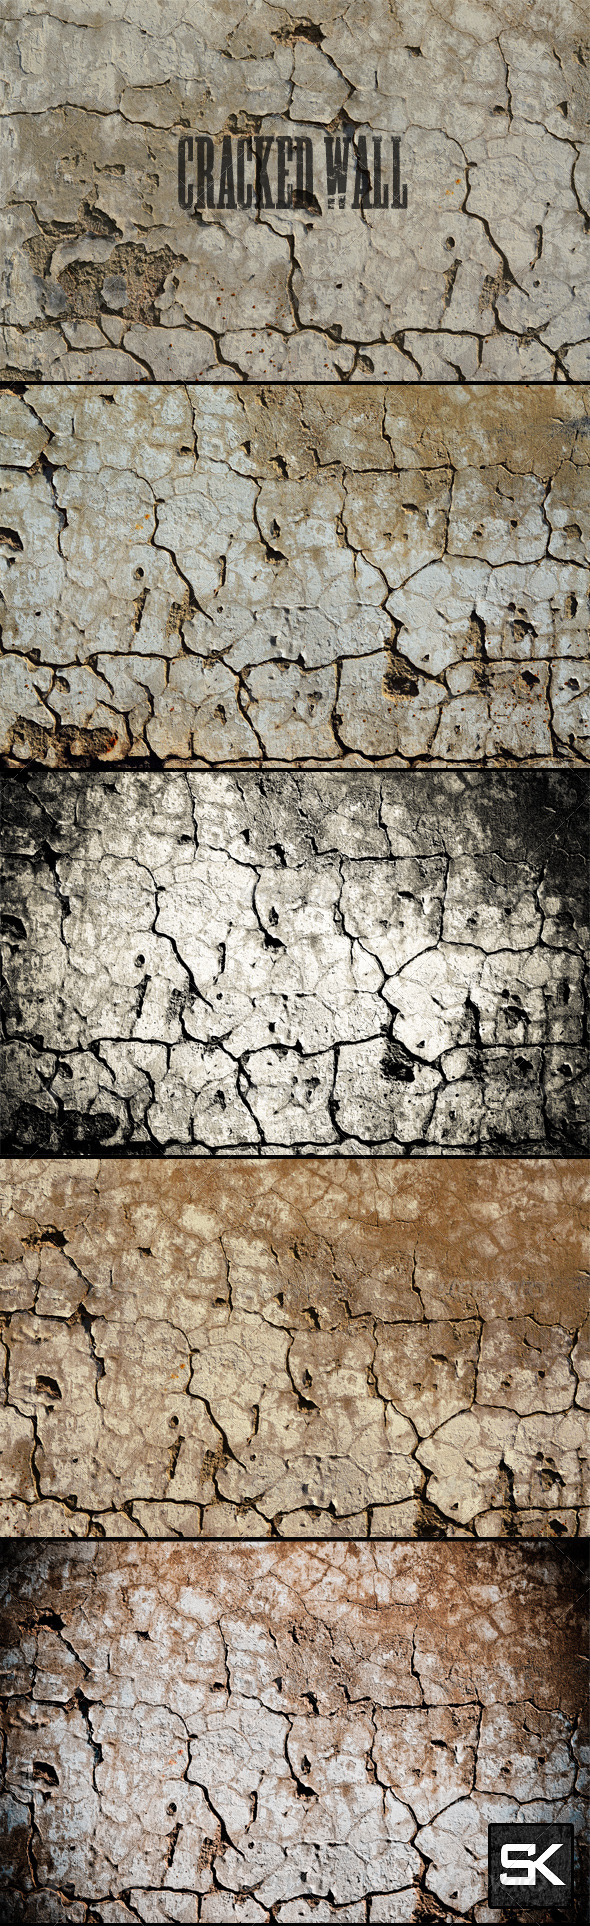 GraphicRiver Cracked Wall 8258459